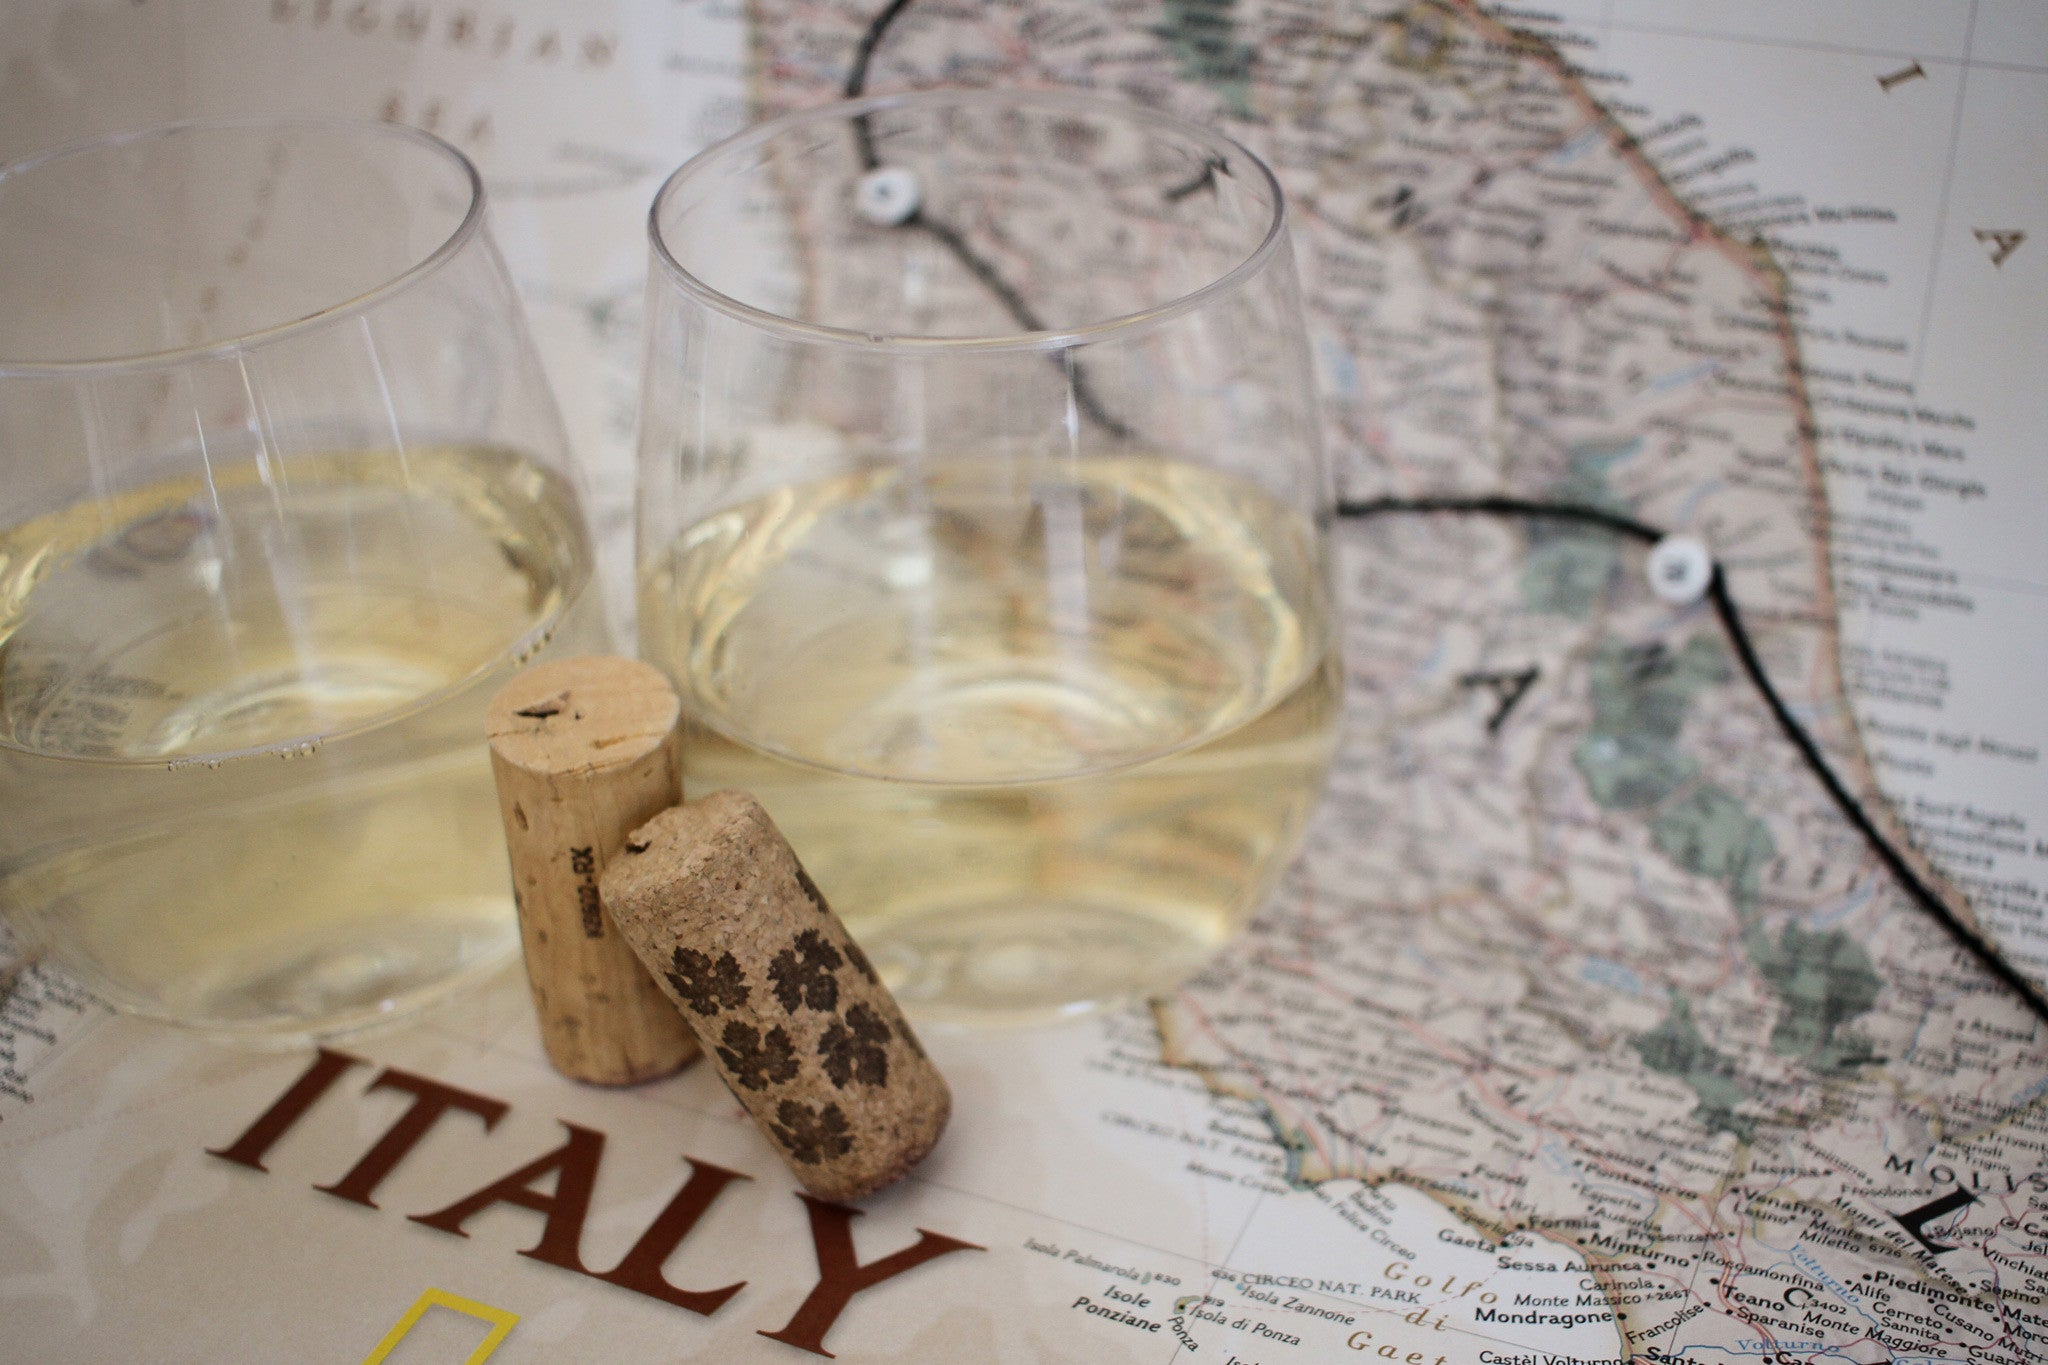 Marche wines, touring Italy by the wine glass, Verdicchio pairing